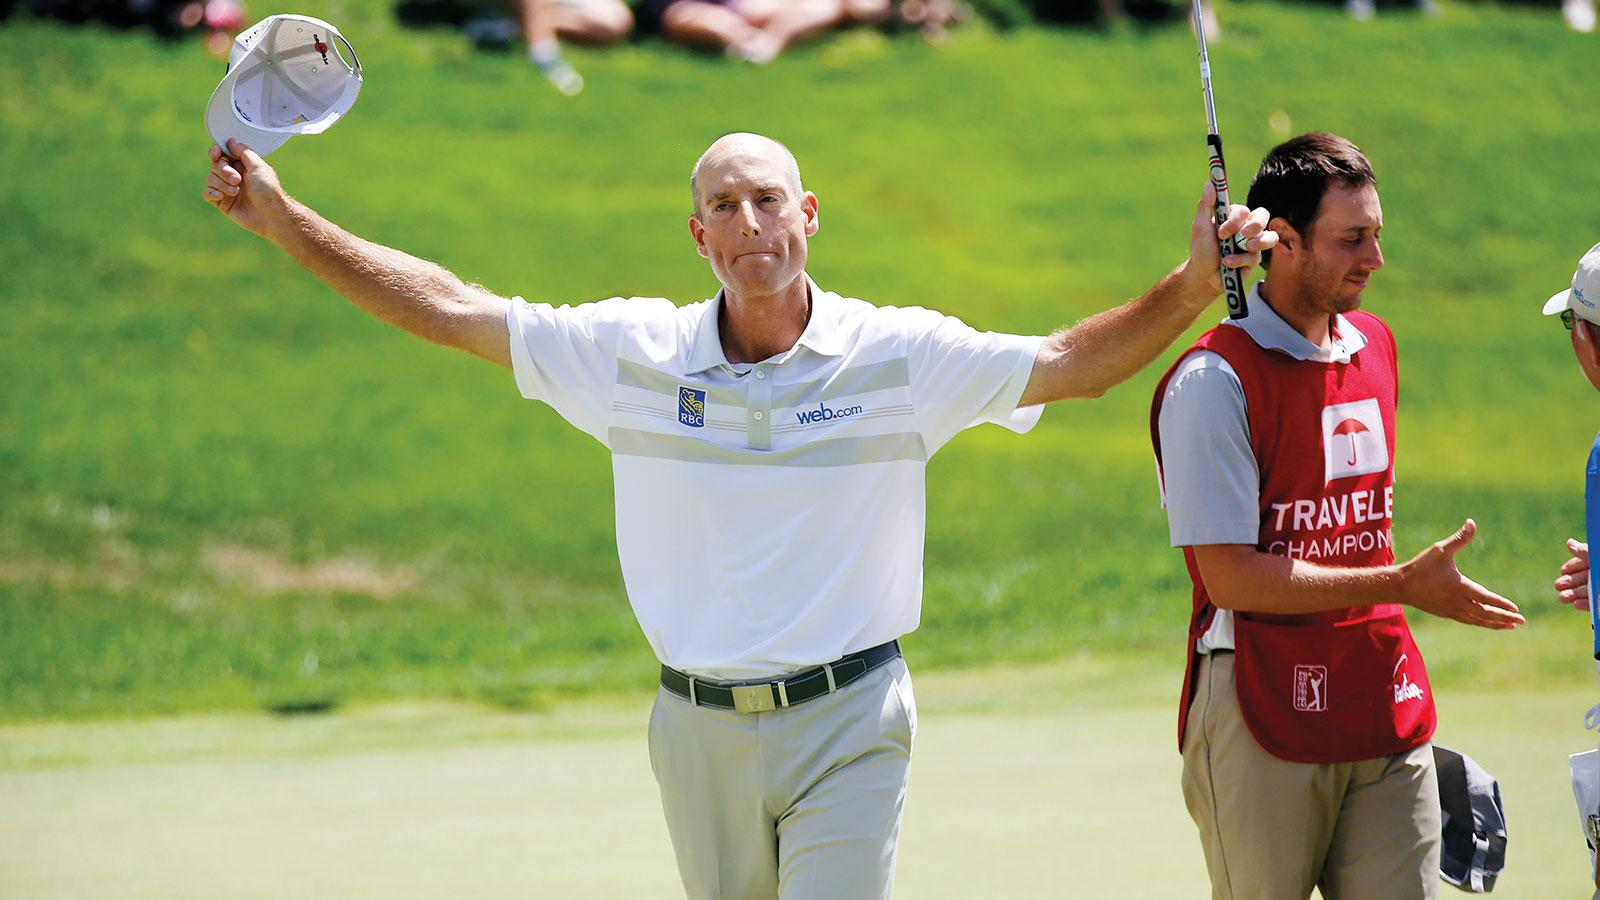 Jim Furyk raises his arms and keeps a tight grip on the ball that he hit 58 times on Sunday, August 7, setting a record for fewest strokes ever taken in a round of PGA golf.